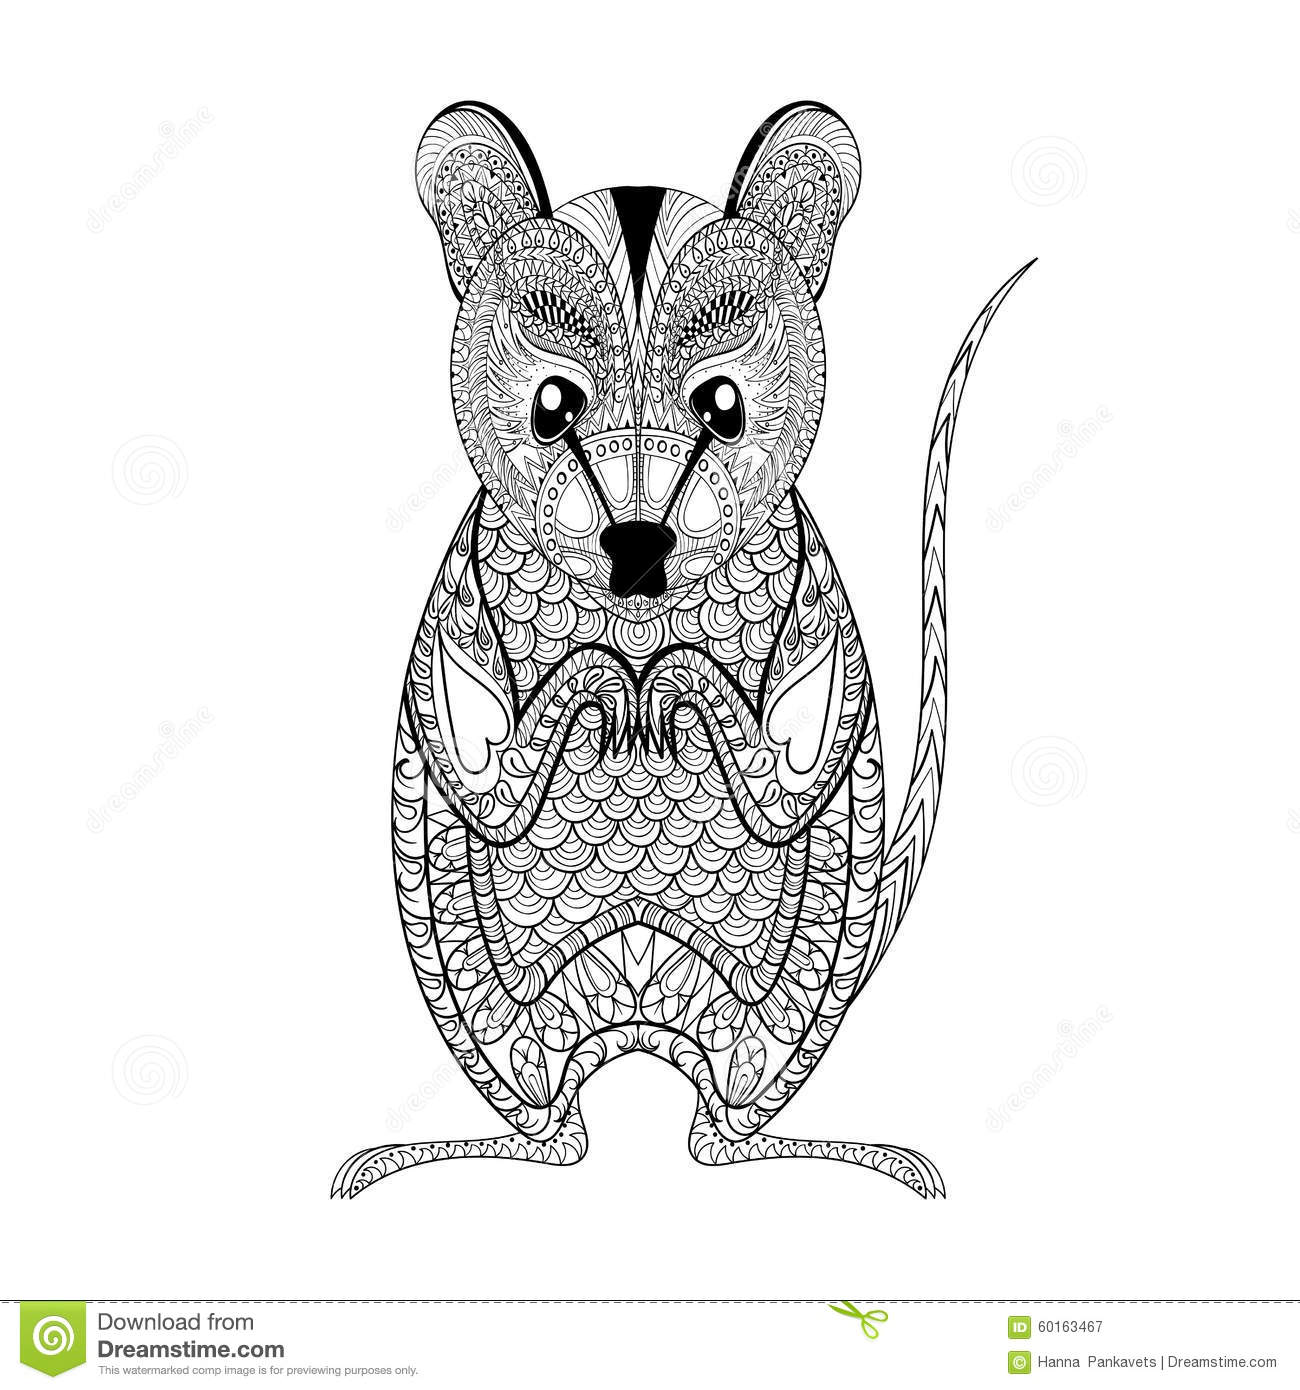 Anti stress coloring therapy - Royalty Free Vector Download Zentangle Possum Totem For Adult Anti Stress Coloring